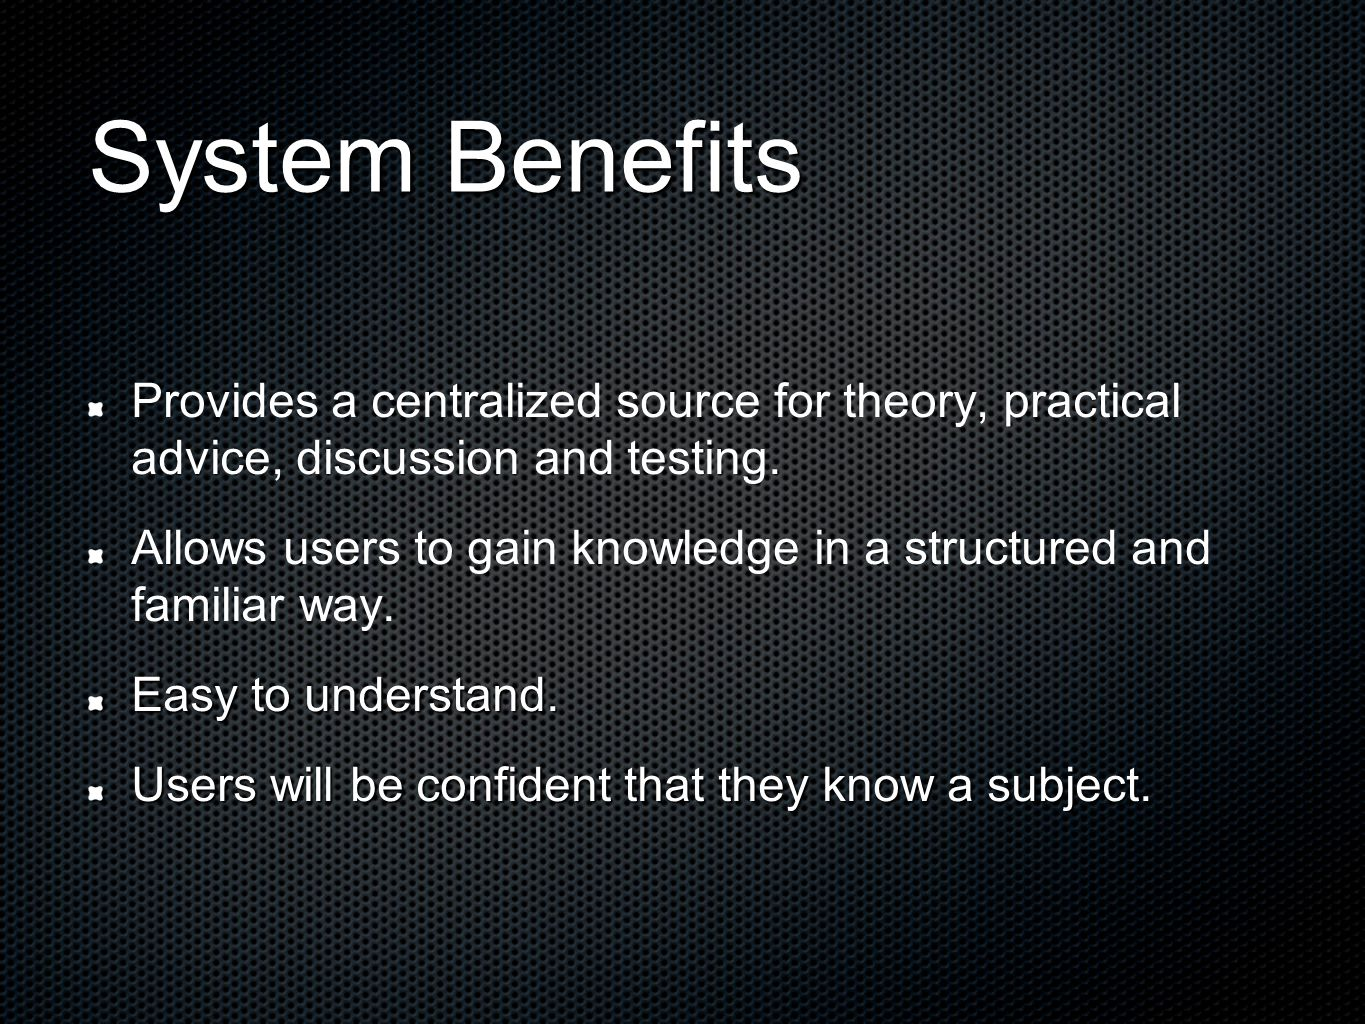 System Benefits Provides a centralized source for theory, practical advice, discussion and testing.